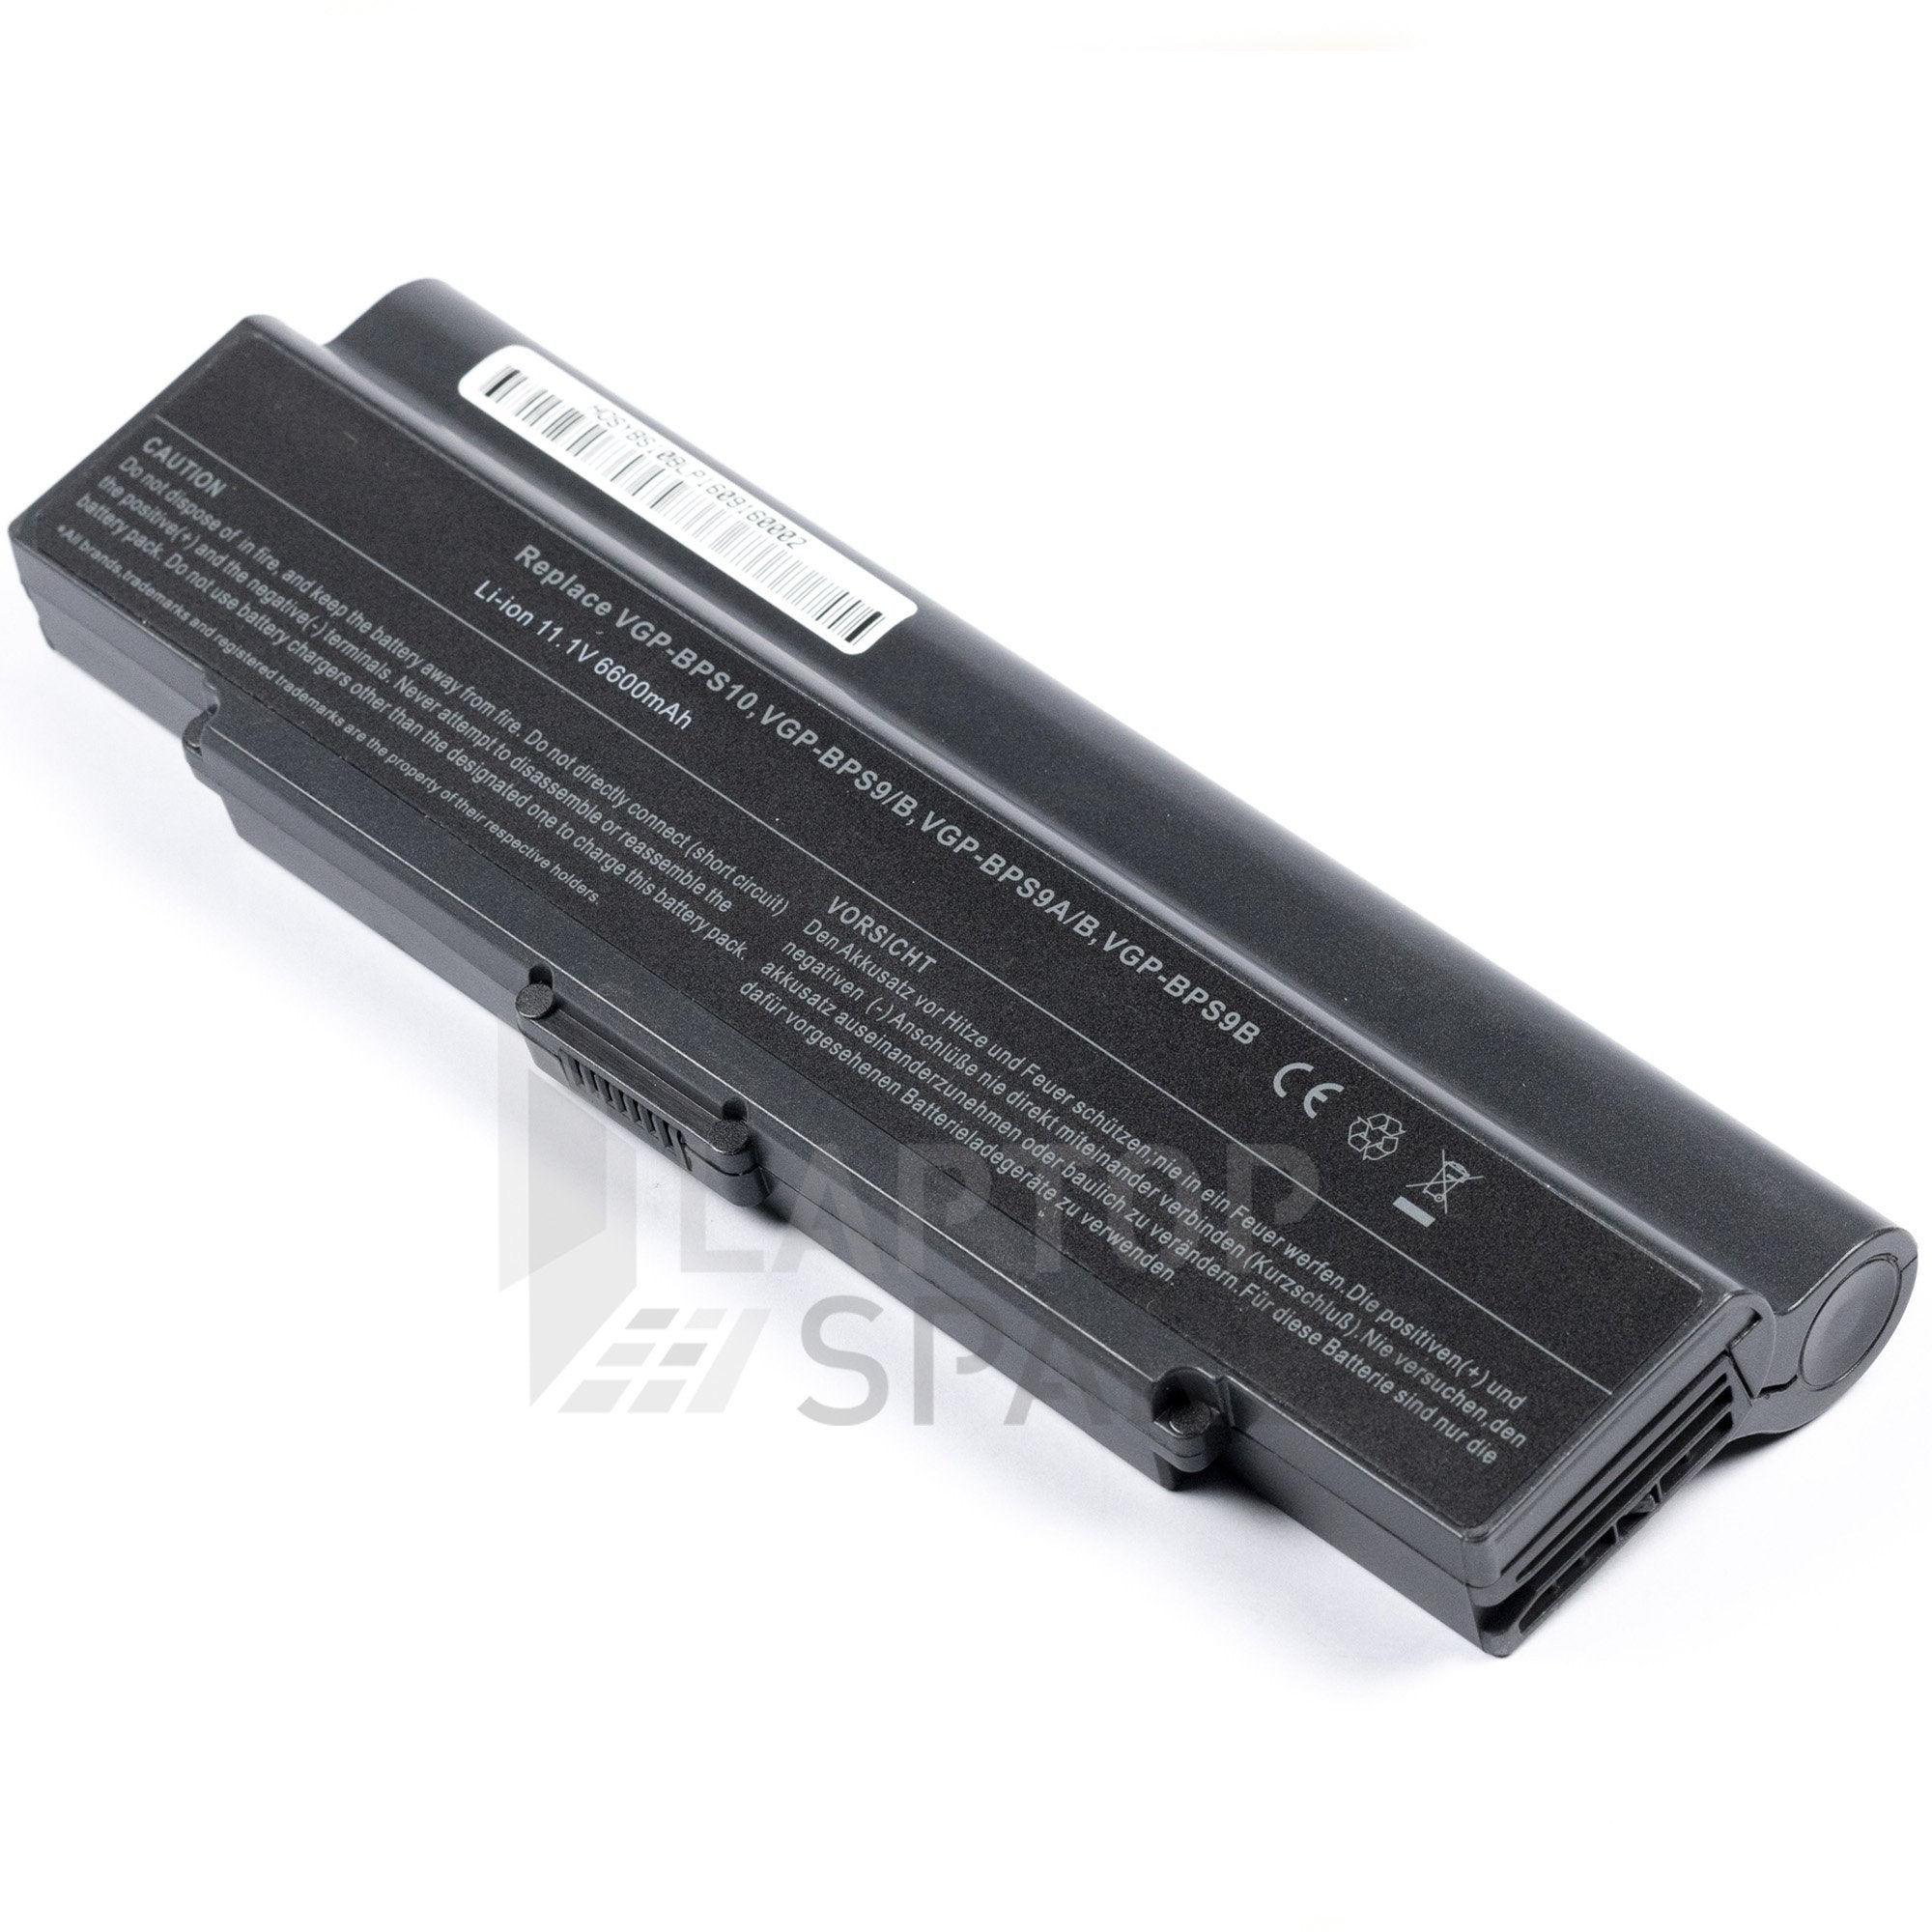 Sony Vaio VGN AR84S AR84US 6600mAh 9 Cell Battery